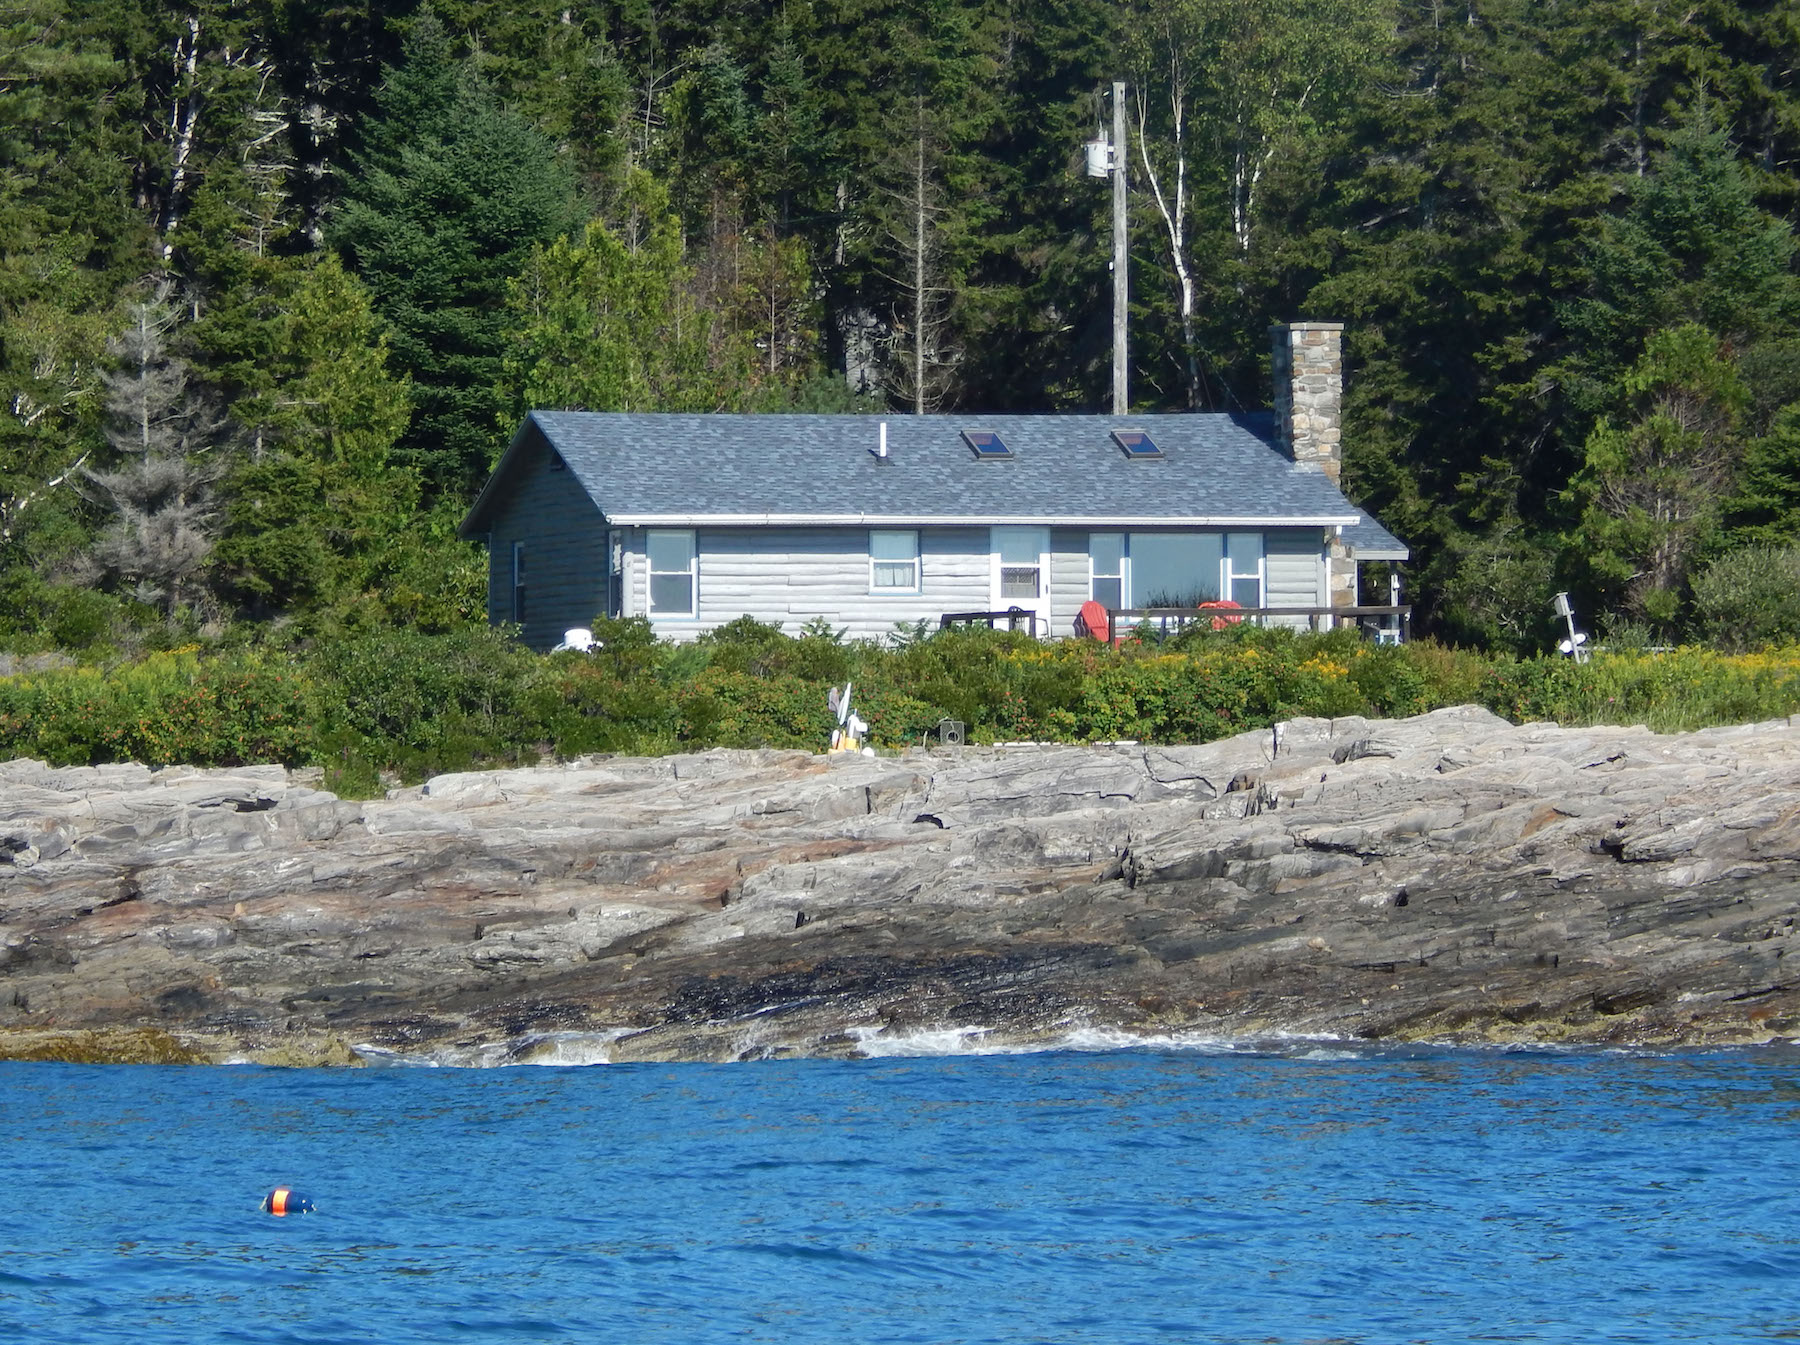 The cottage as seen from the water. Built in 1960, it has belonged to only one family since.